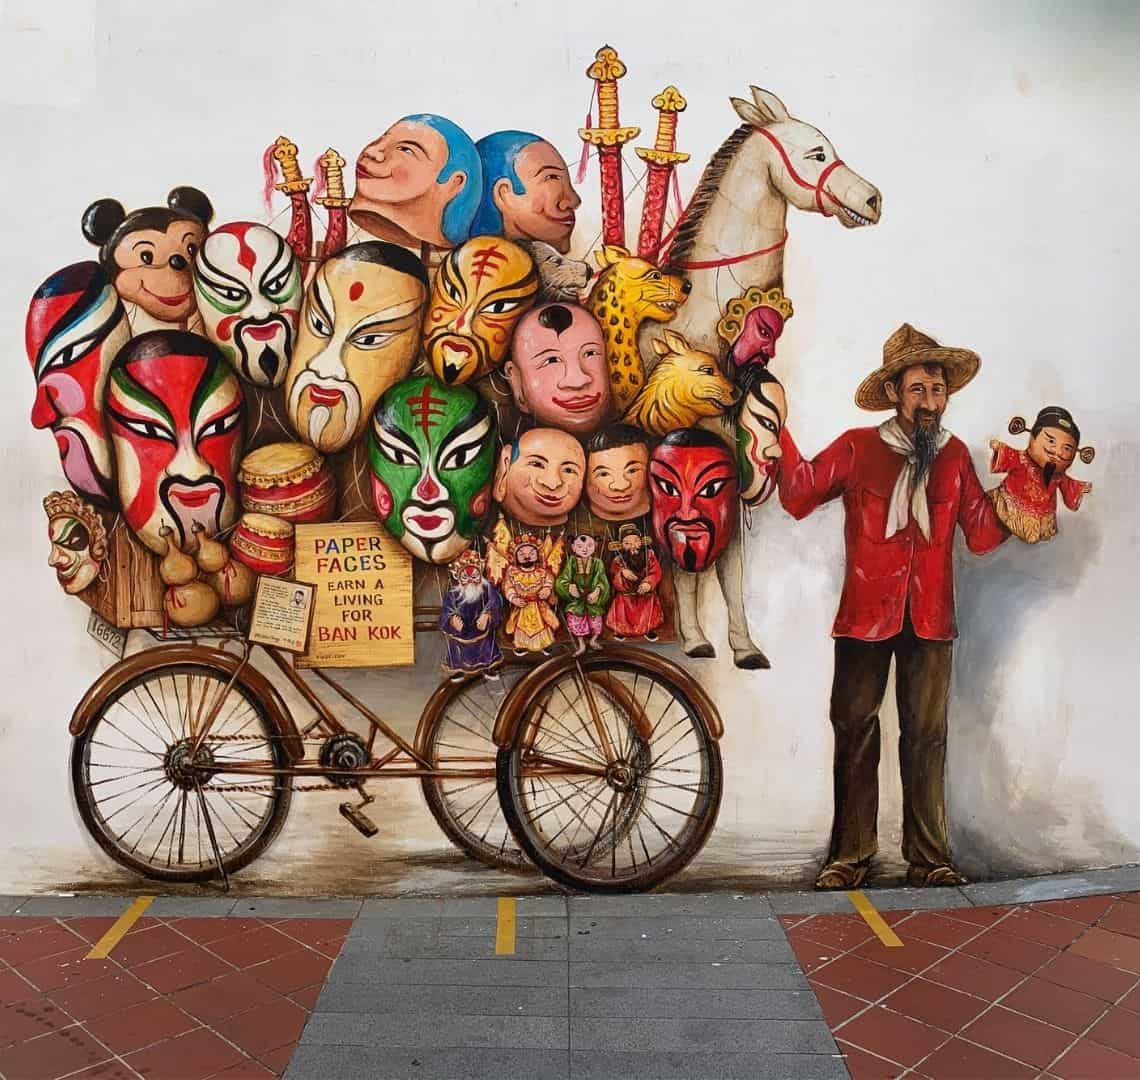 Painted on a white wall in Chinatown Singapore is an image by Yip Yew Chong of a hawker in a red shirt with a white scarf and brown trousers and a hat. In his left hand is a puppet and his right hand is holding up a bicycle that is loaded with puppets, face masks, swords and a toy horse.